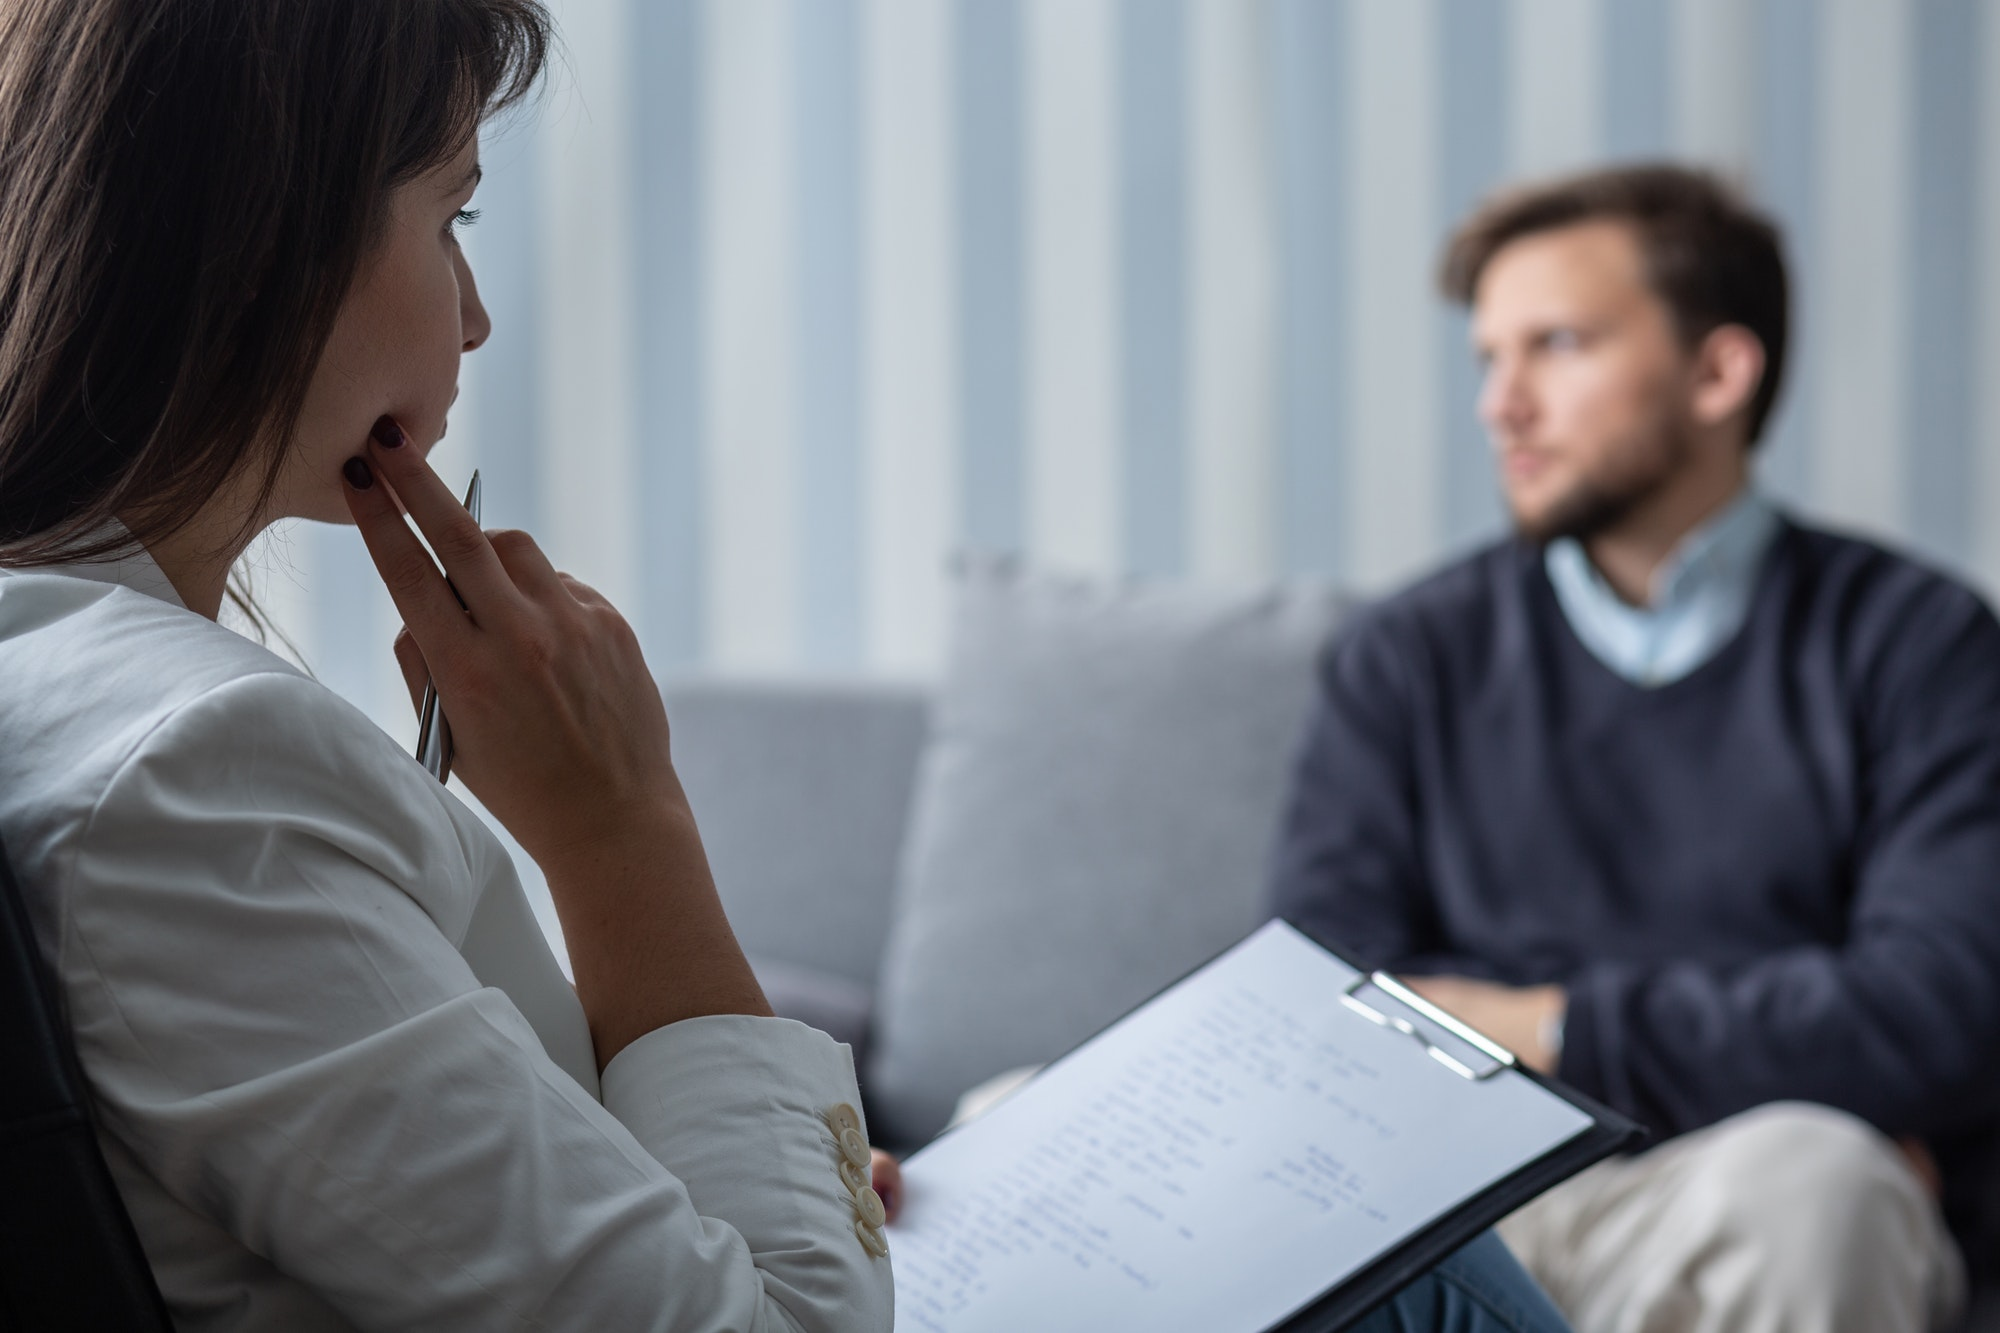 Thoughtful psychotherapist during session with sad patient with